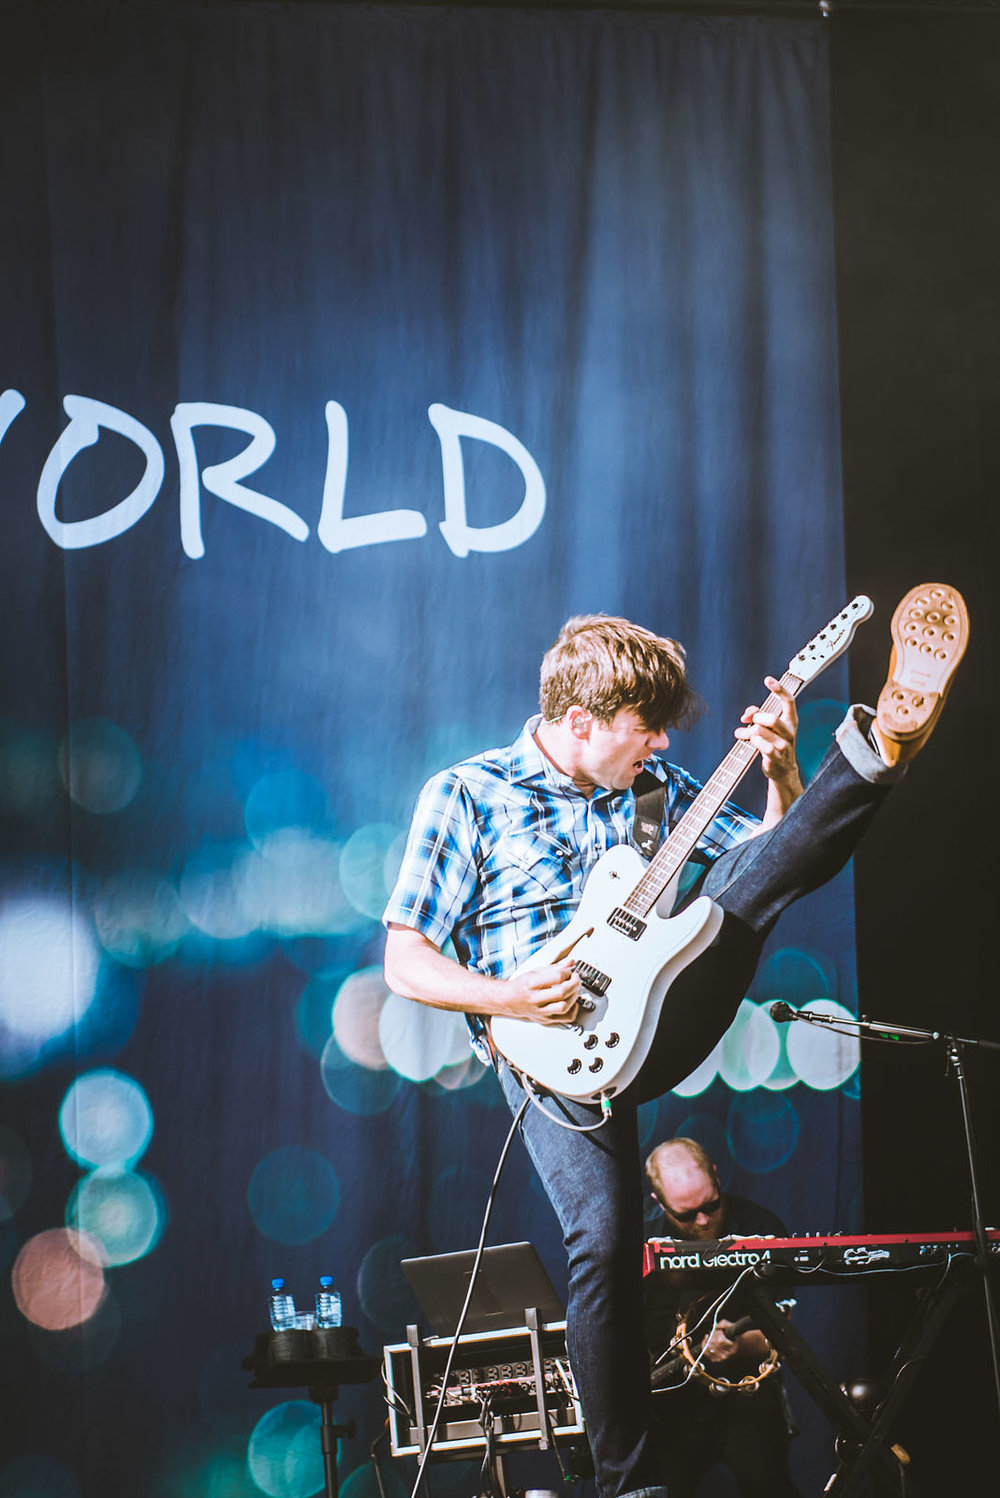 JIMMY EAT WORLD PERFORMING AT LEEDS FESTIVAL 2017 - 26/08/2017  PICTURE BY: Sarah Koury - Entirety Labs